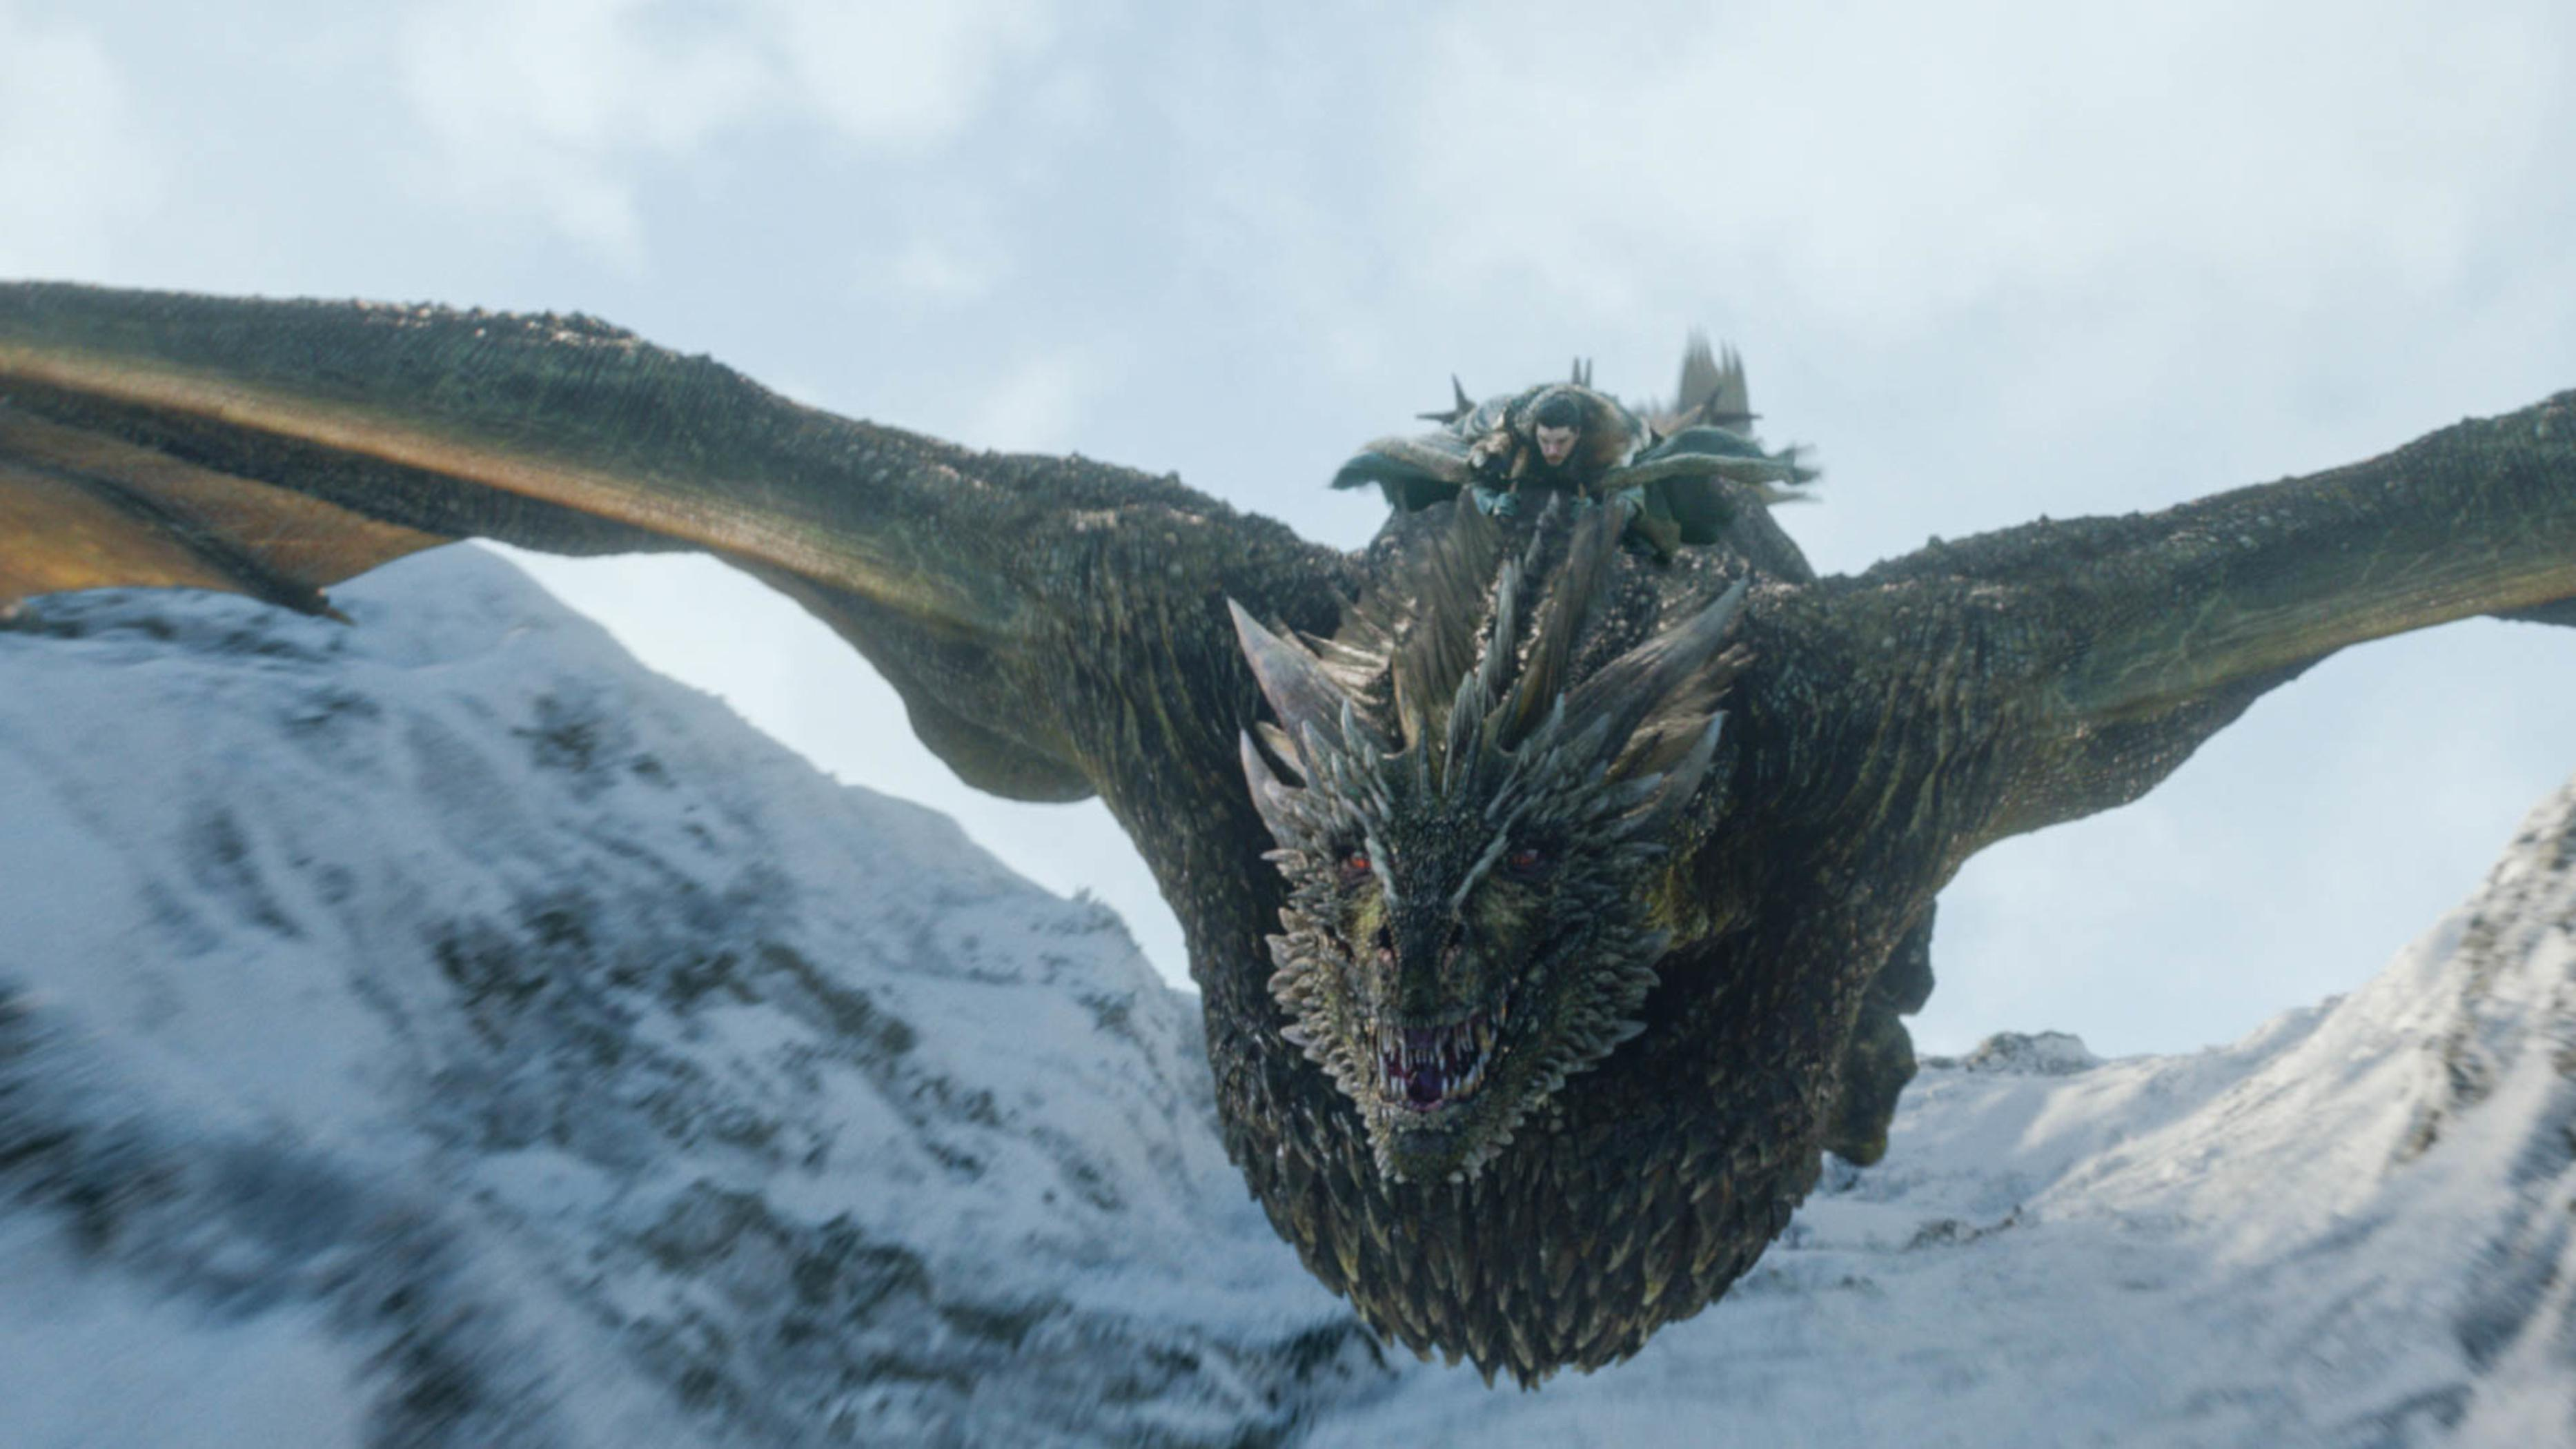 The Week in TV: Game of Thrones; Climate Change: The Facts; Earth from Space and more – review